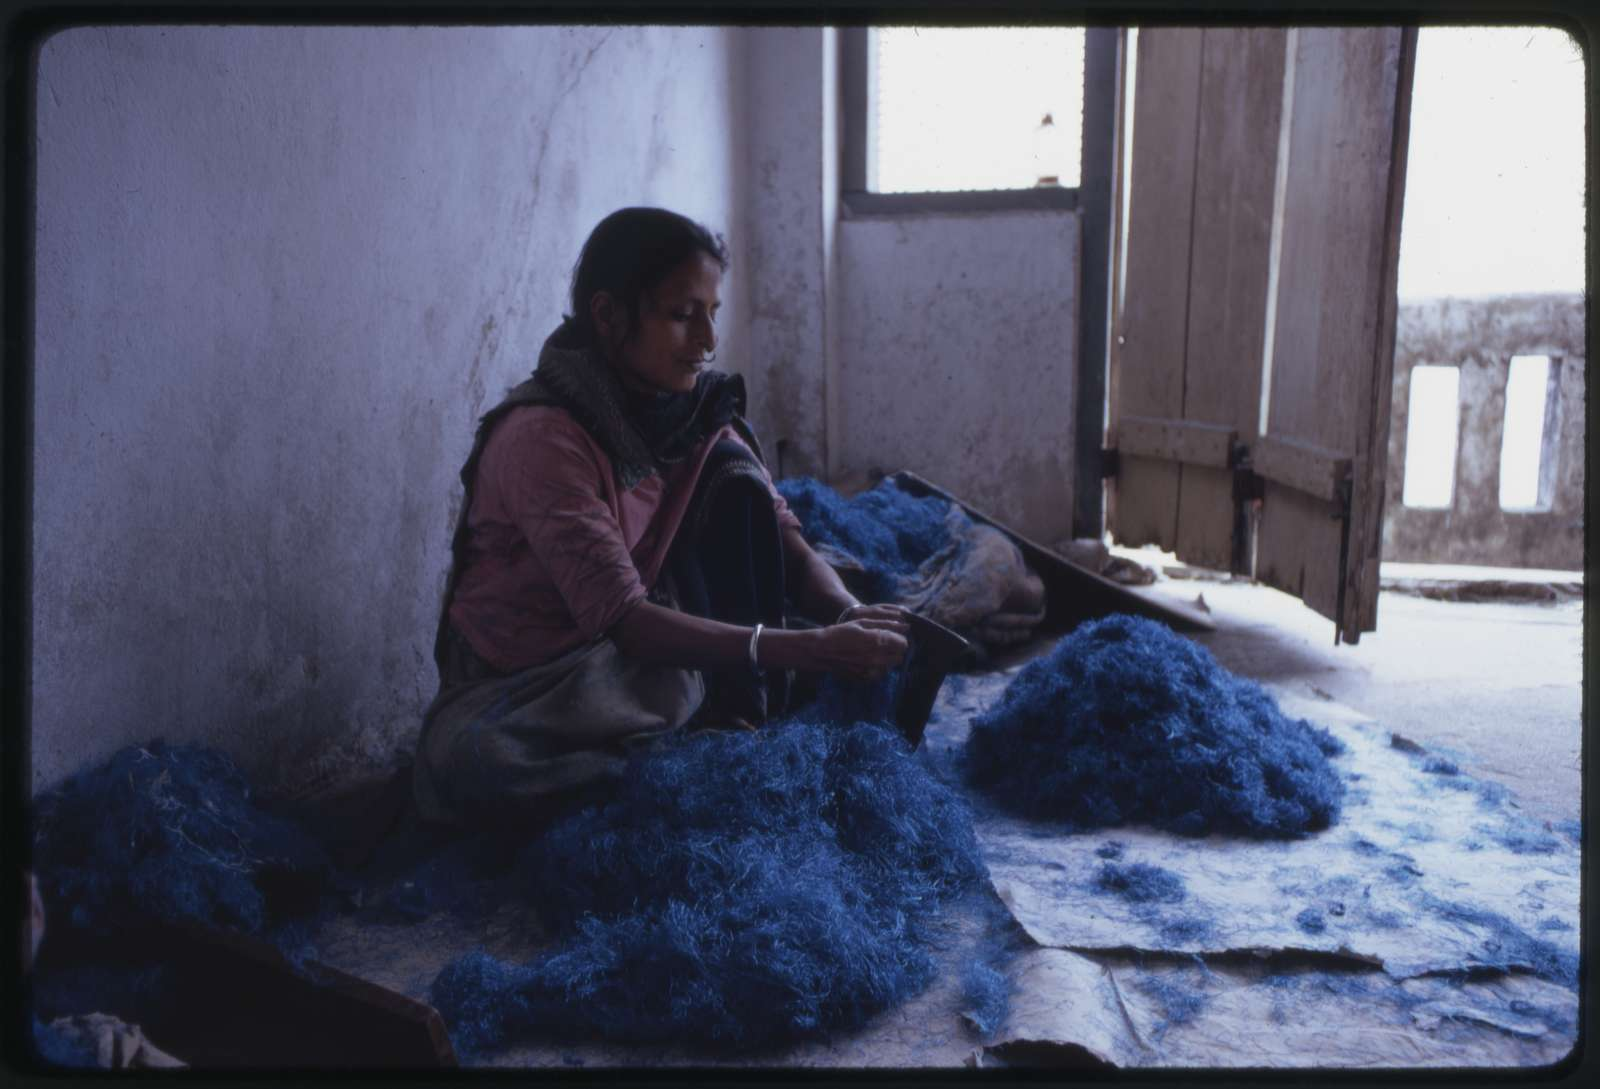 [Nepalese woman working with blue dyed wool, Sikkim]